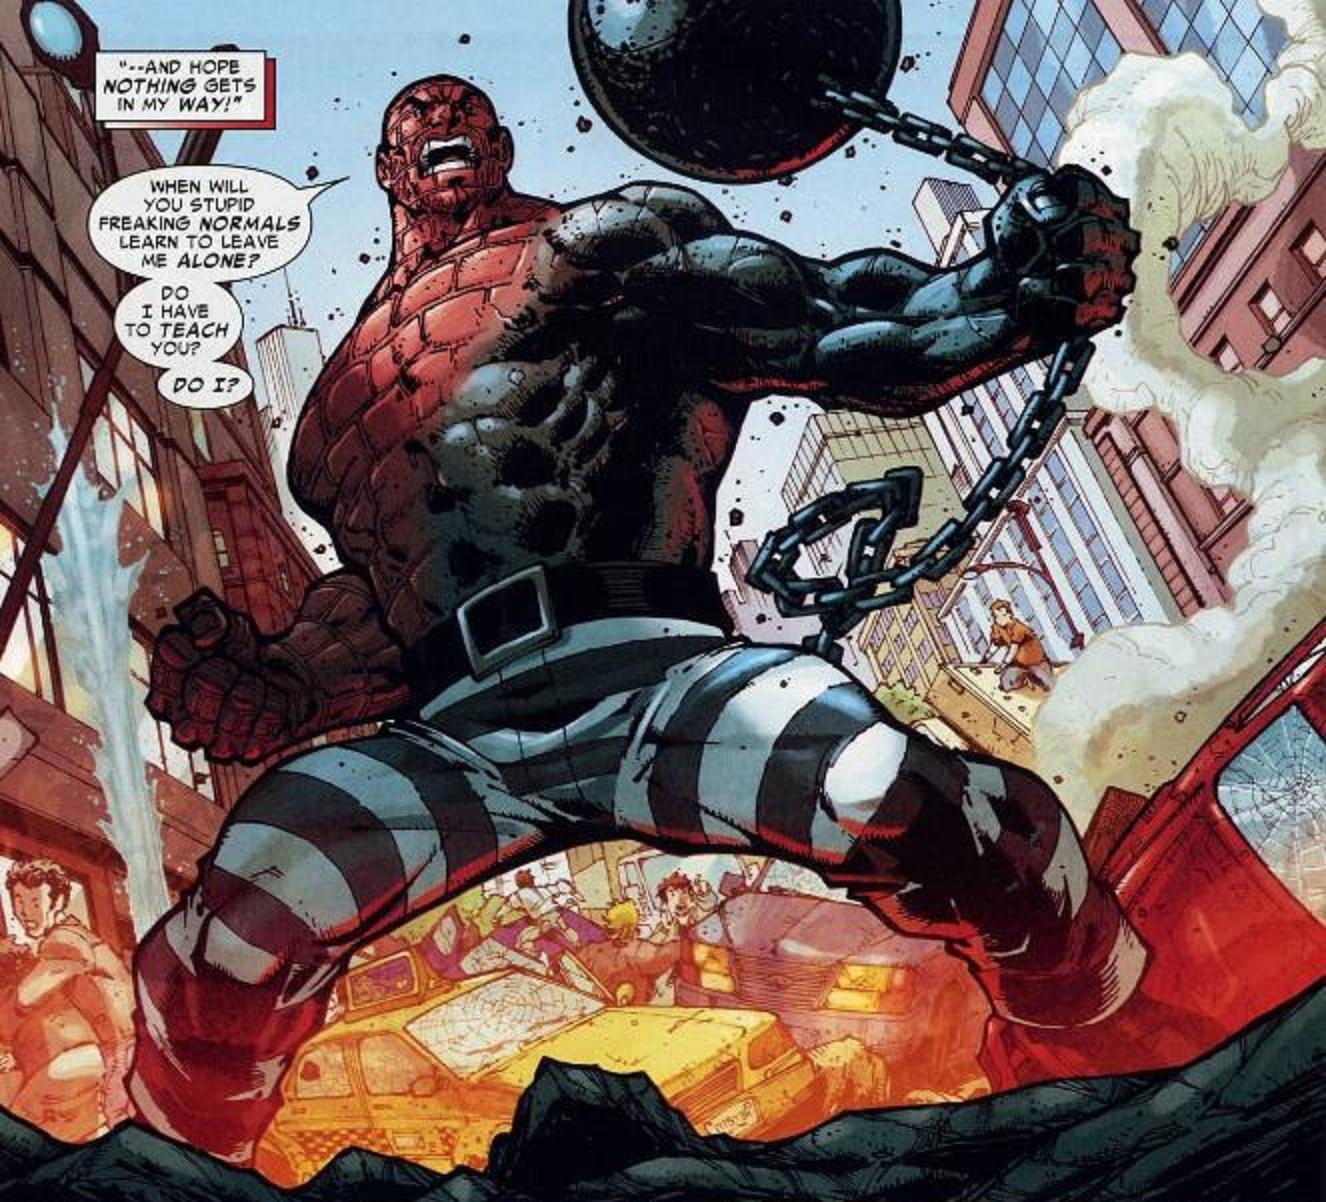 Absorbing Man needs an image linked